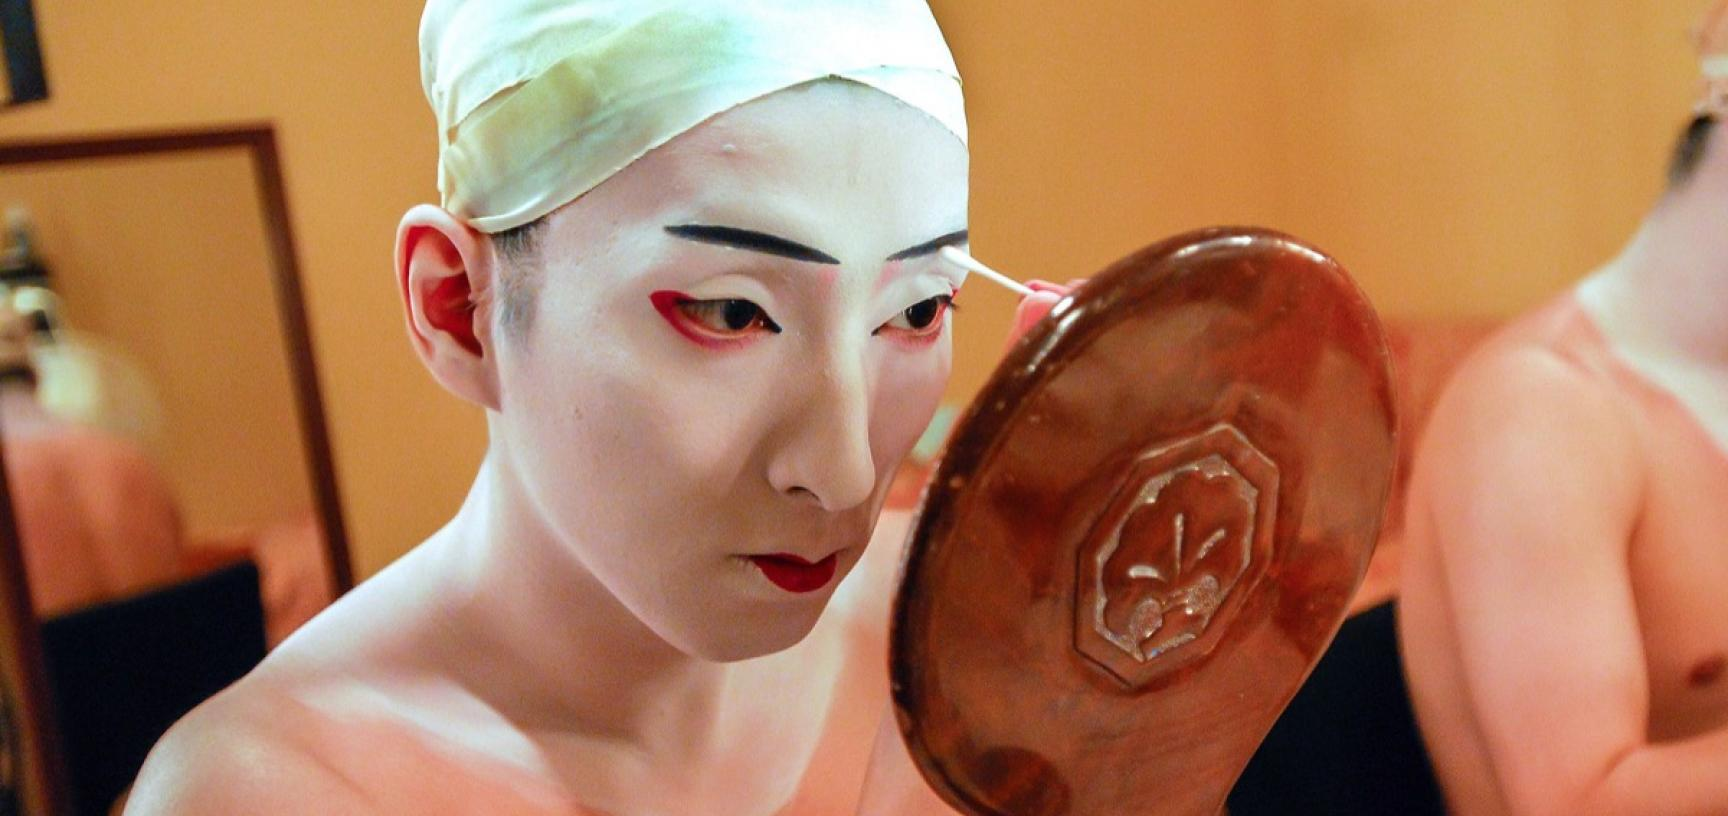 Nakamura Shichinosuke II applying his make-up prior to a performance of the play Sumidagawa Gonichi no Omokage, also known as Hokaibō, part of the 2007 Lincoln Center Festival in New York City. On the back of his mirror can be seen the mon (family crest)